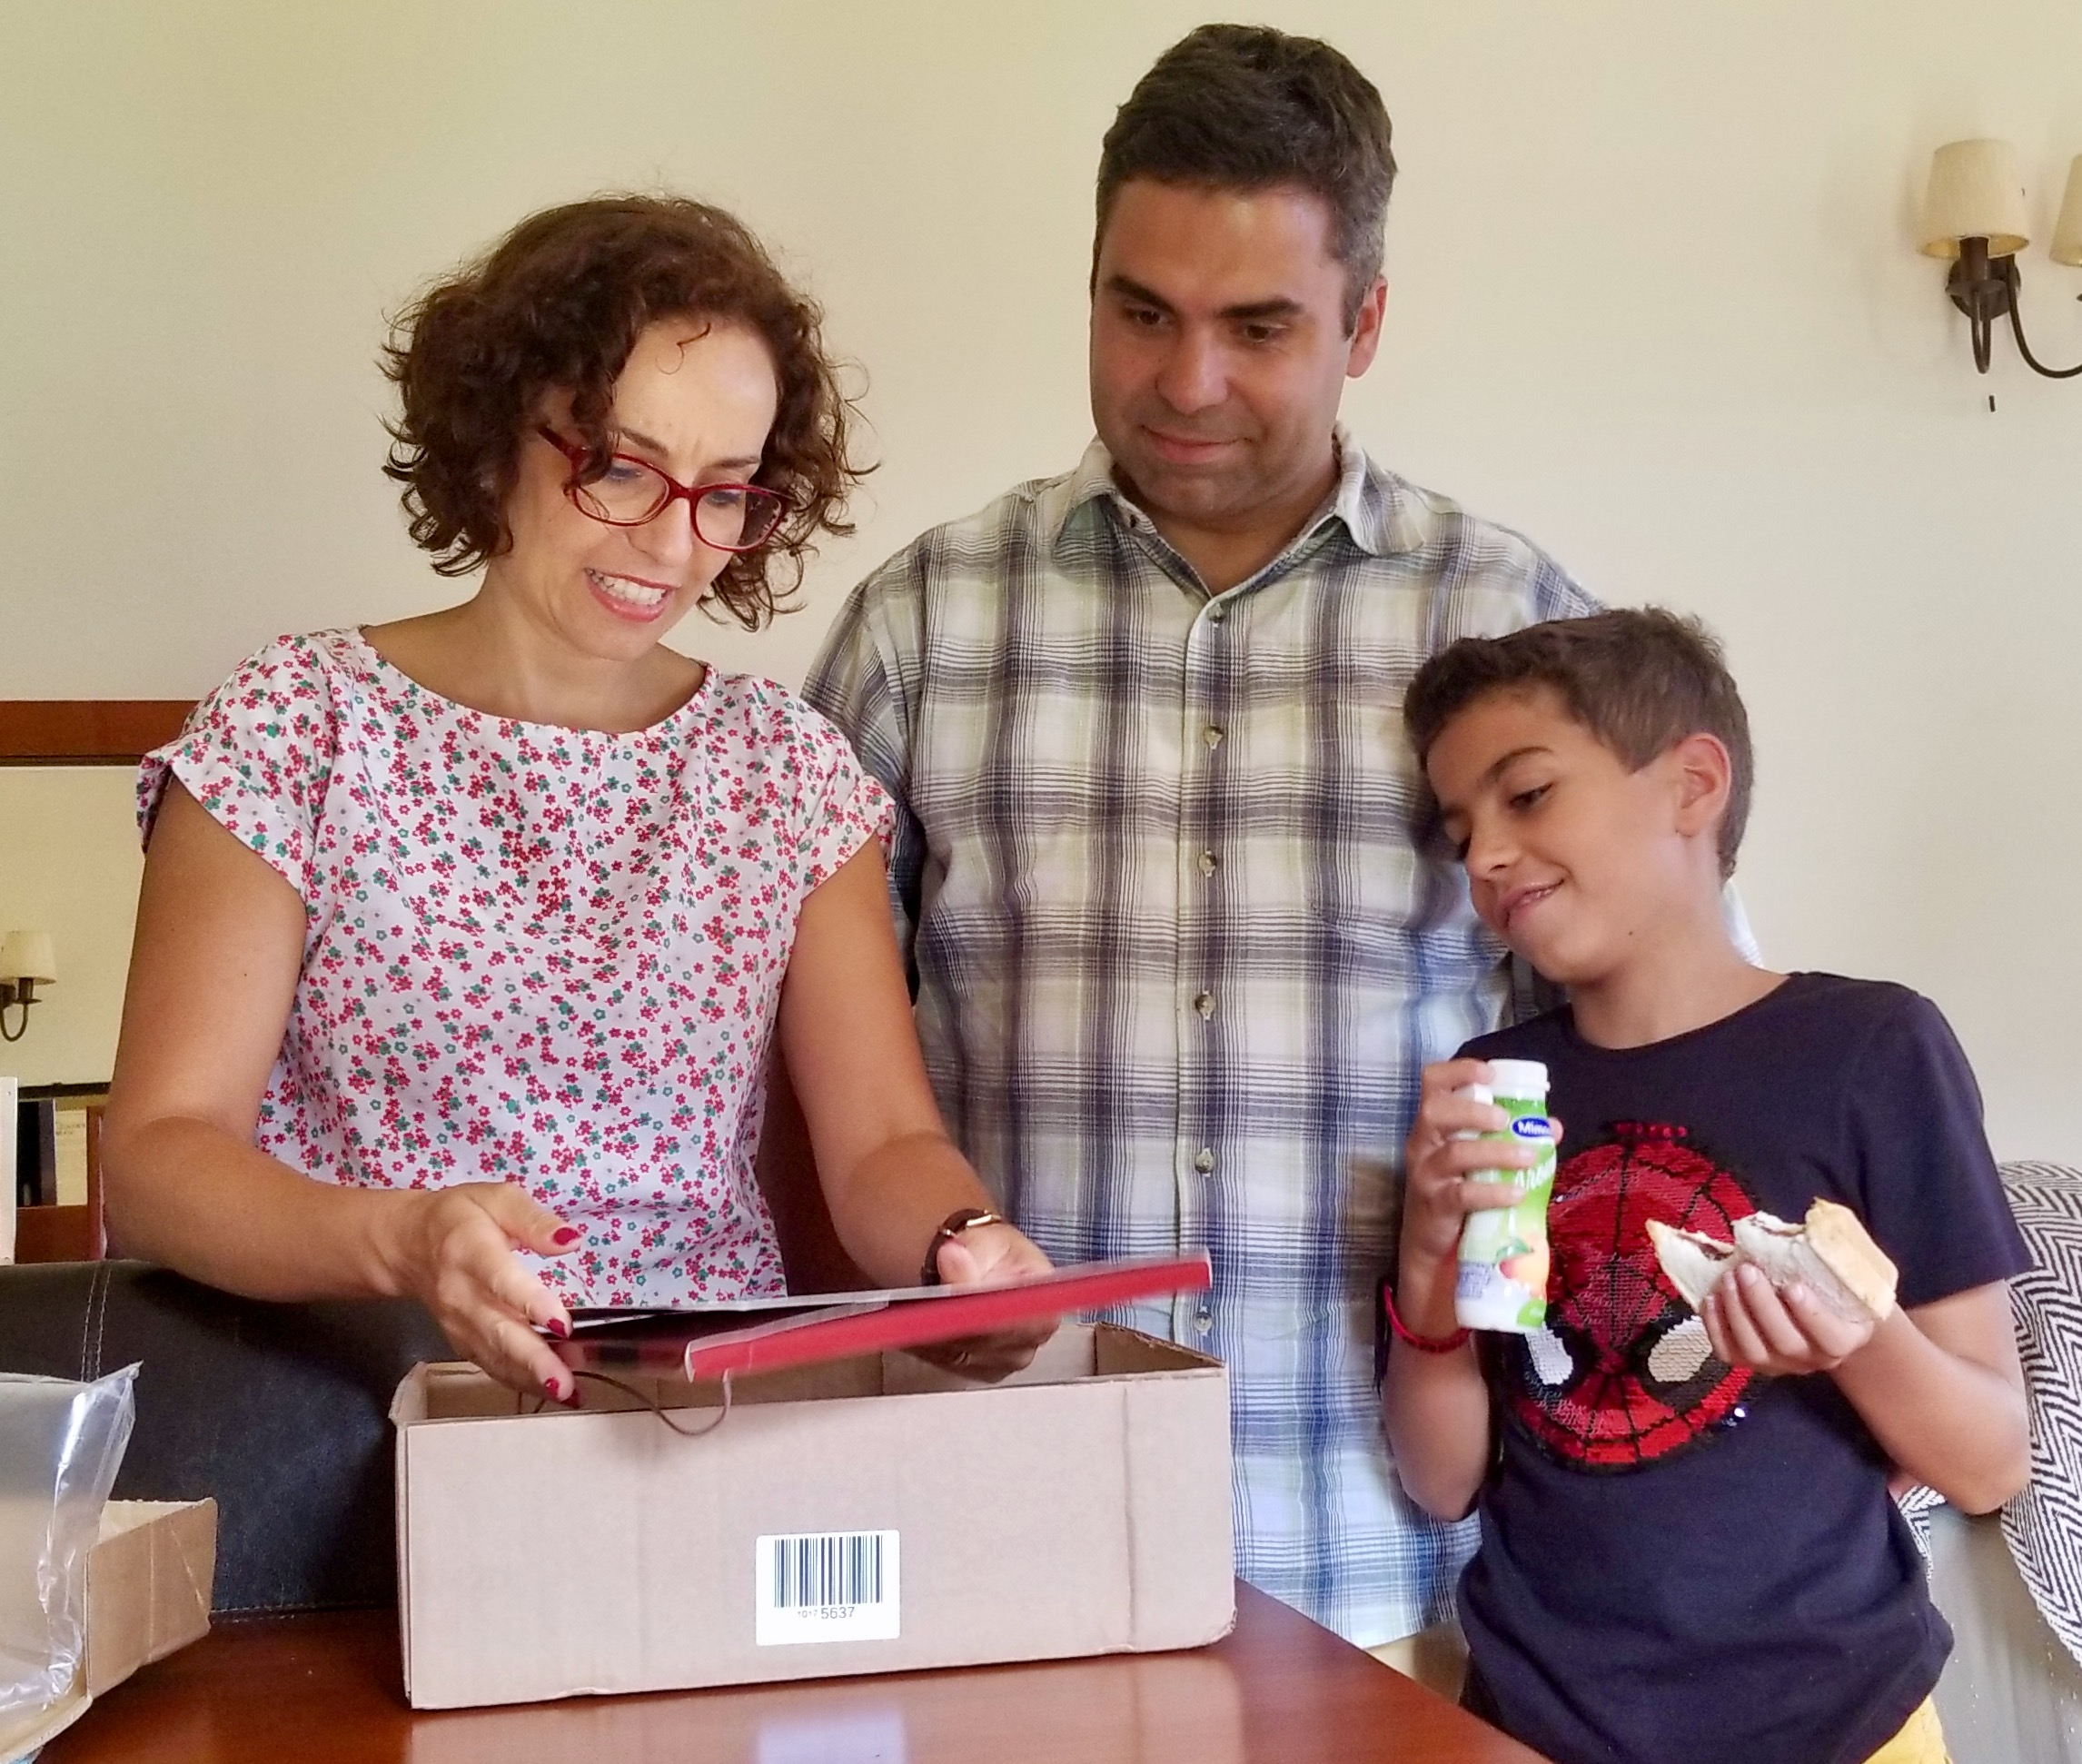 Tânia Alves, left, opens a box containing text books for her son, Samuel, right, while her husband, Paulo Alves, the Azores' district president, looks on in their home in São Mateus da Calheta, Terceira Island, on Sept. 16, 2019.​